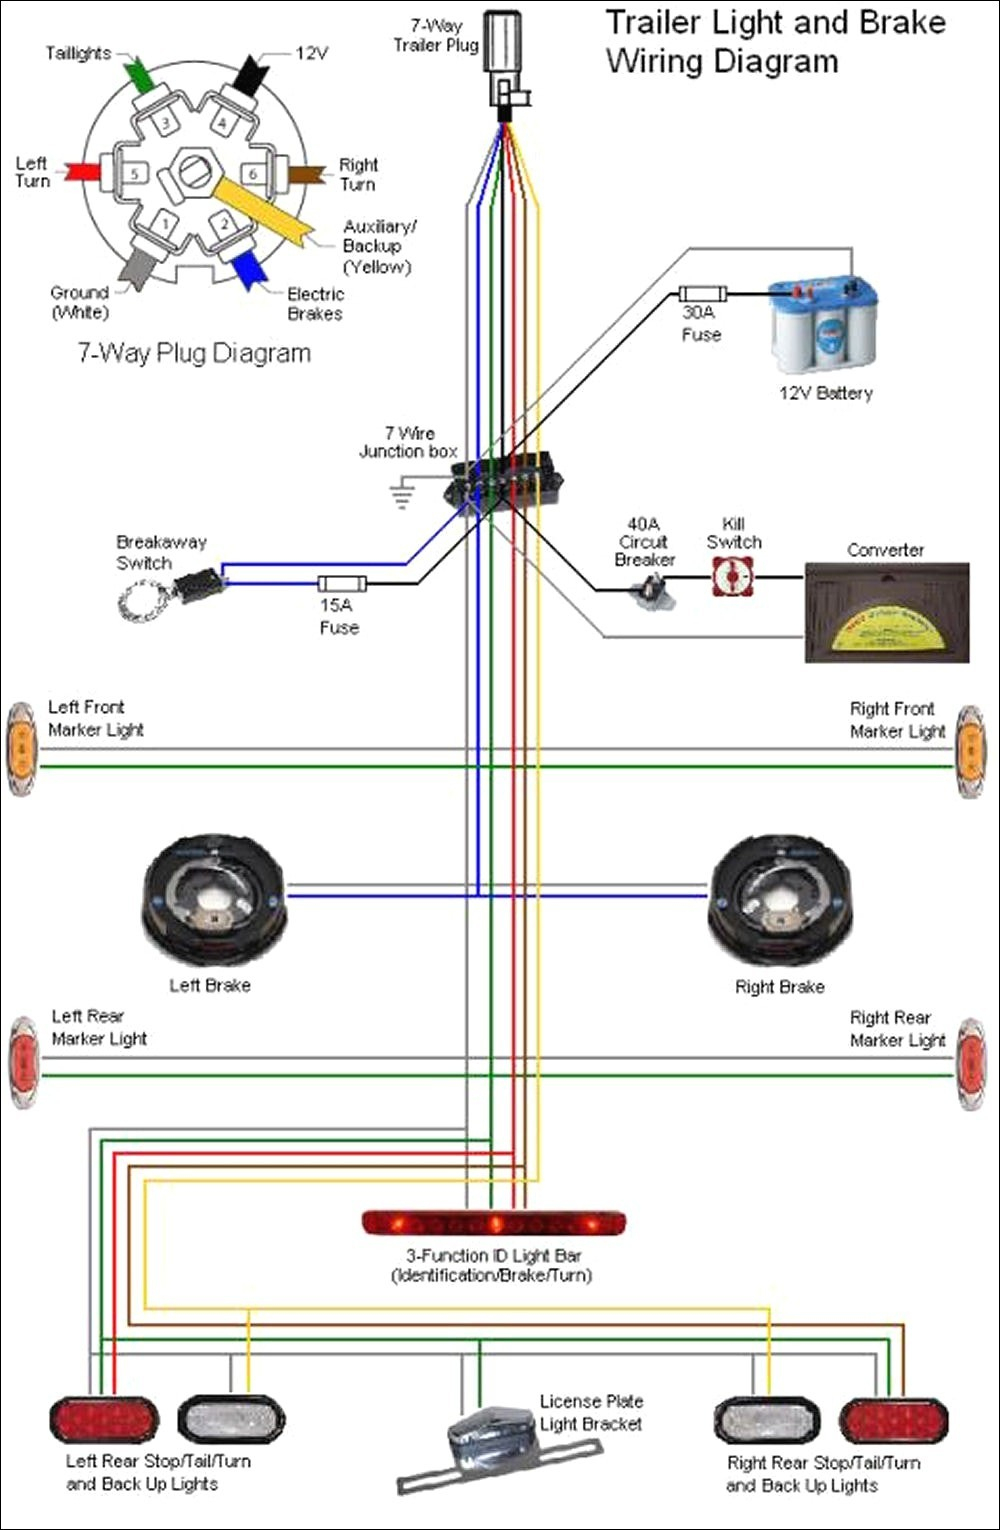 3 prong wiring diagram data wiring diagram7 wire harness wiring diagram 3 prong trailer wiring diagram 3 prong toggle switch wiring diagram 3 prong wiring diagram